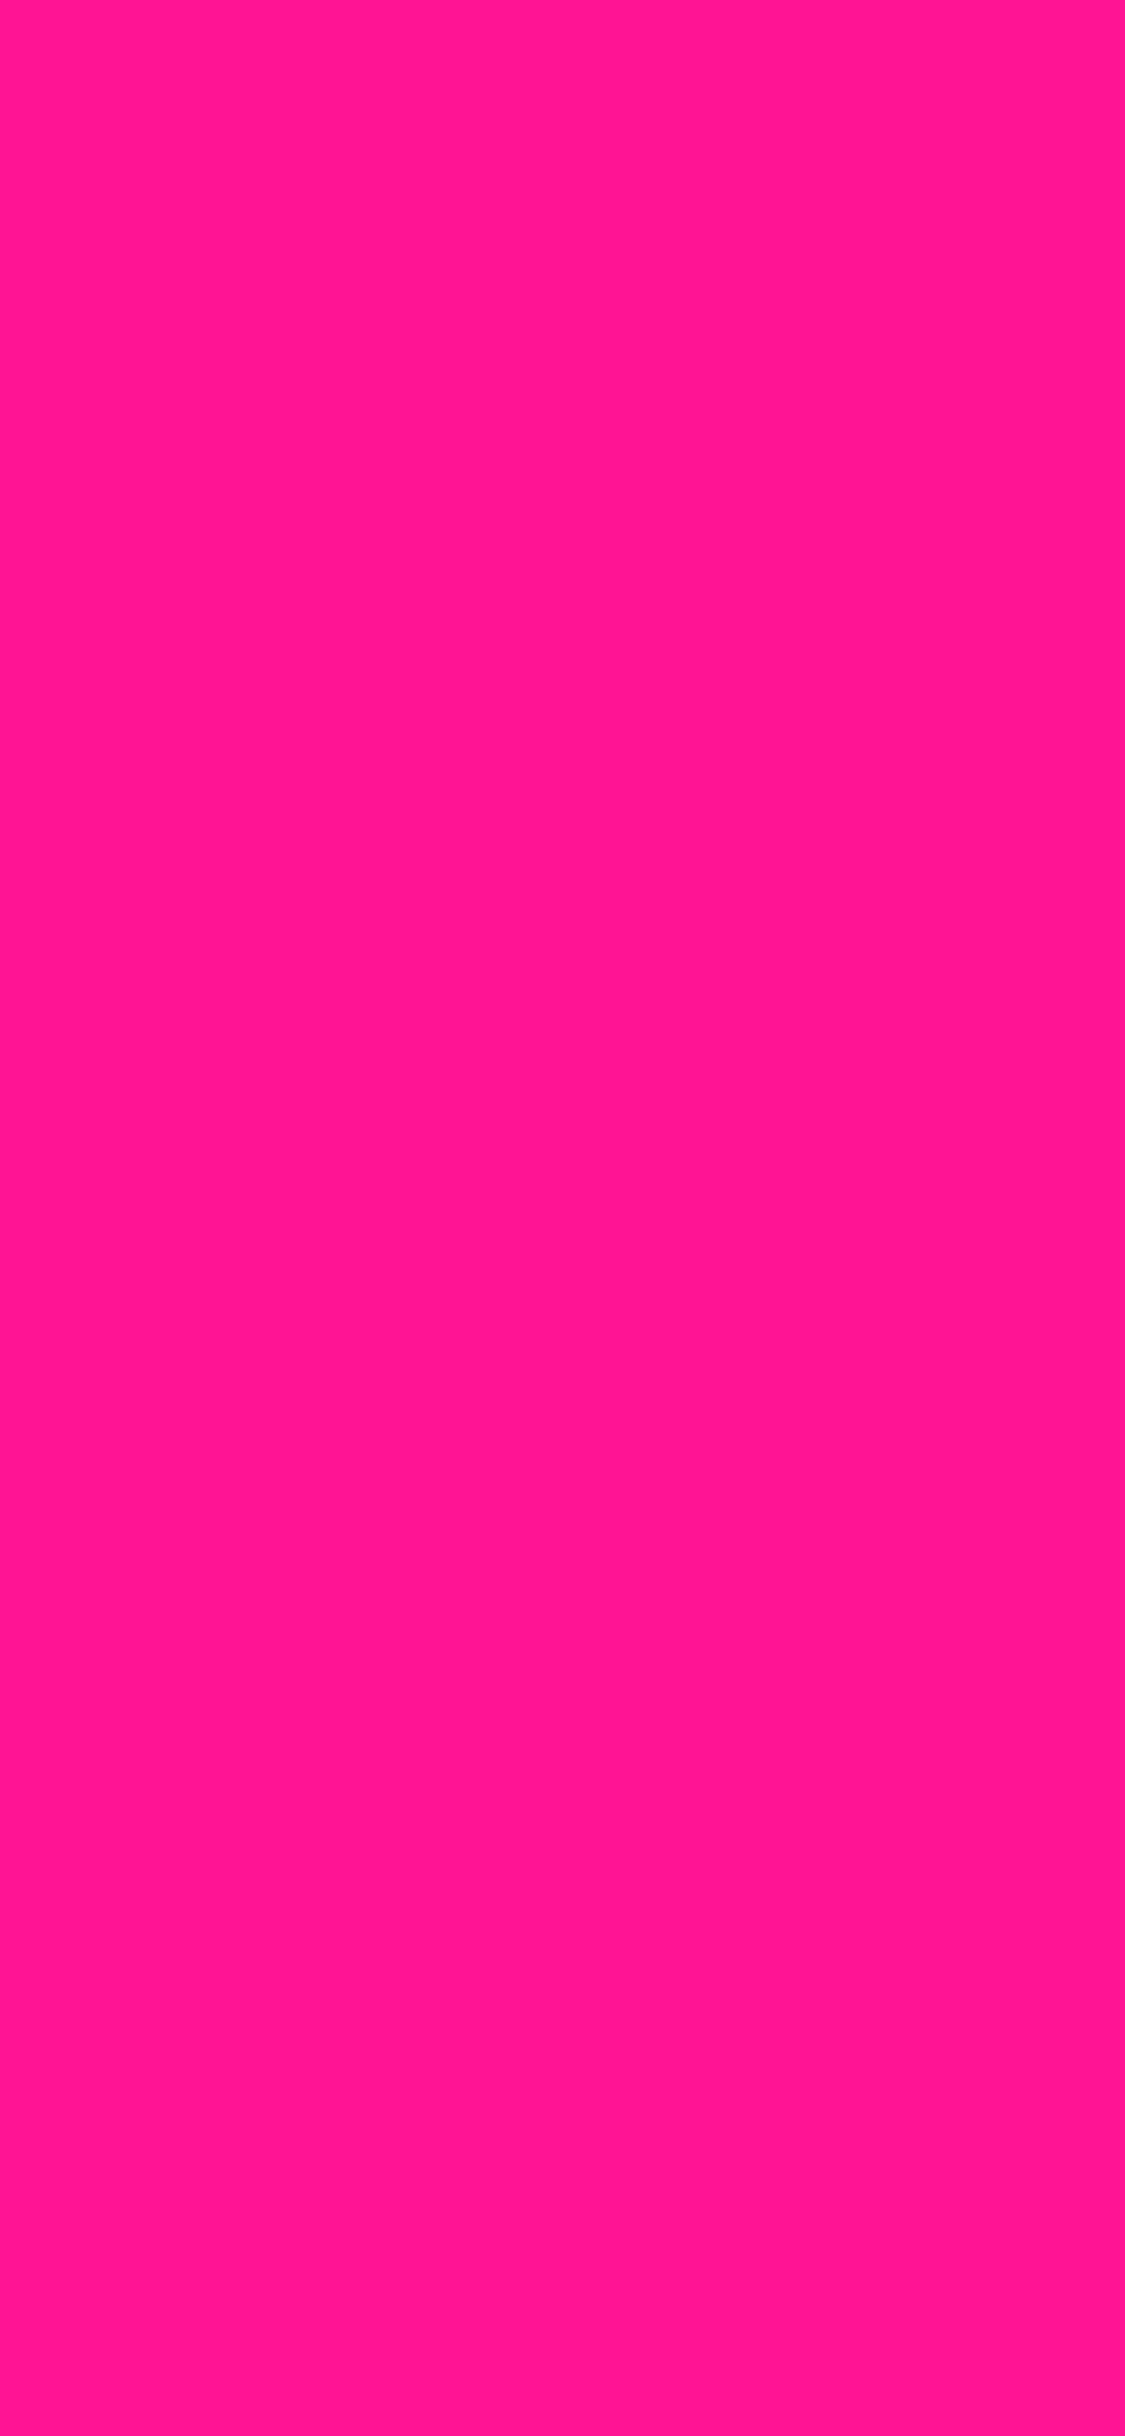 1125x2436 Fluorescent Pink Solid Color Background